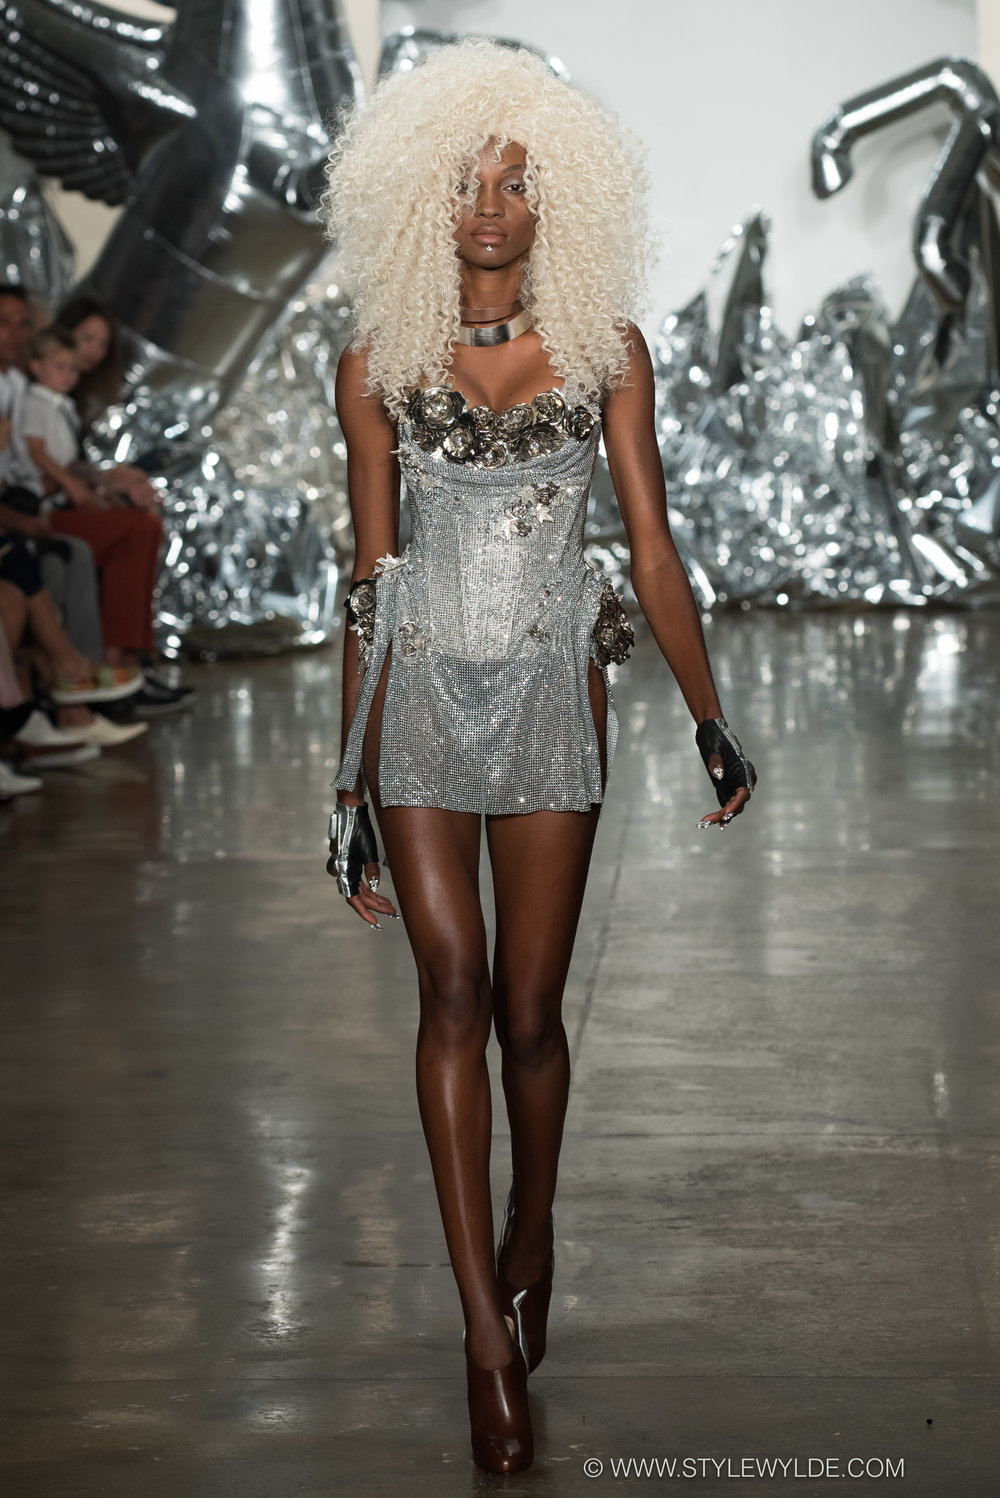 stylewylde-The Blonds SS17-FOH- Edits-44.jpg